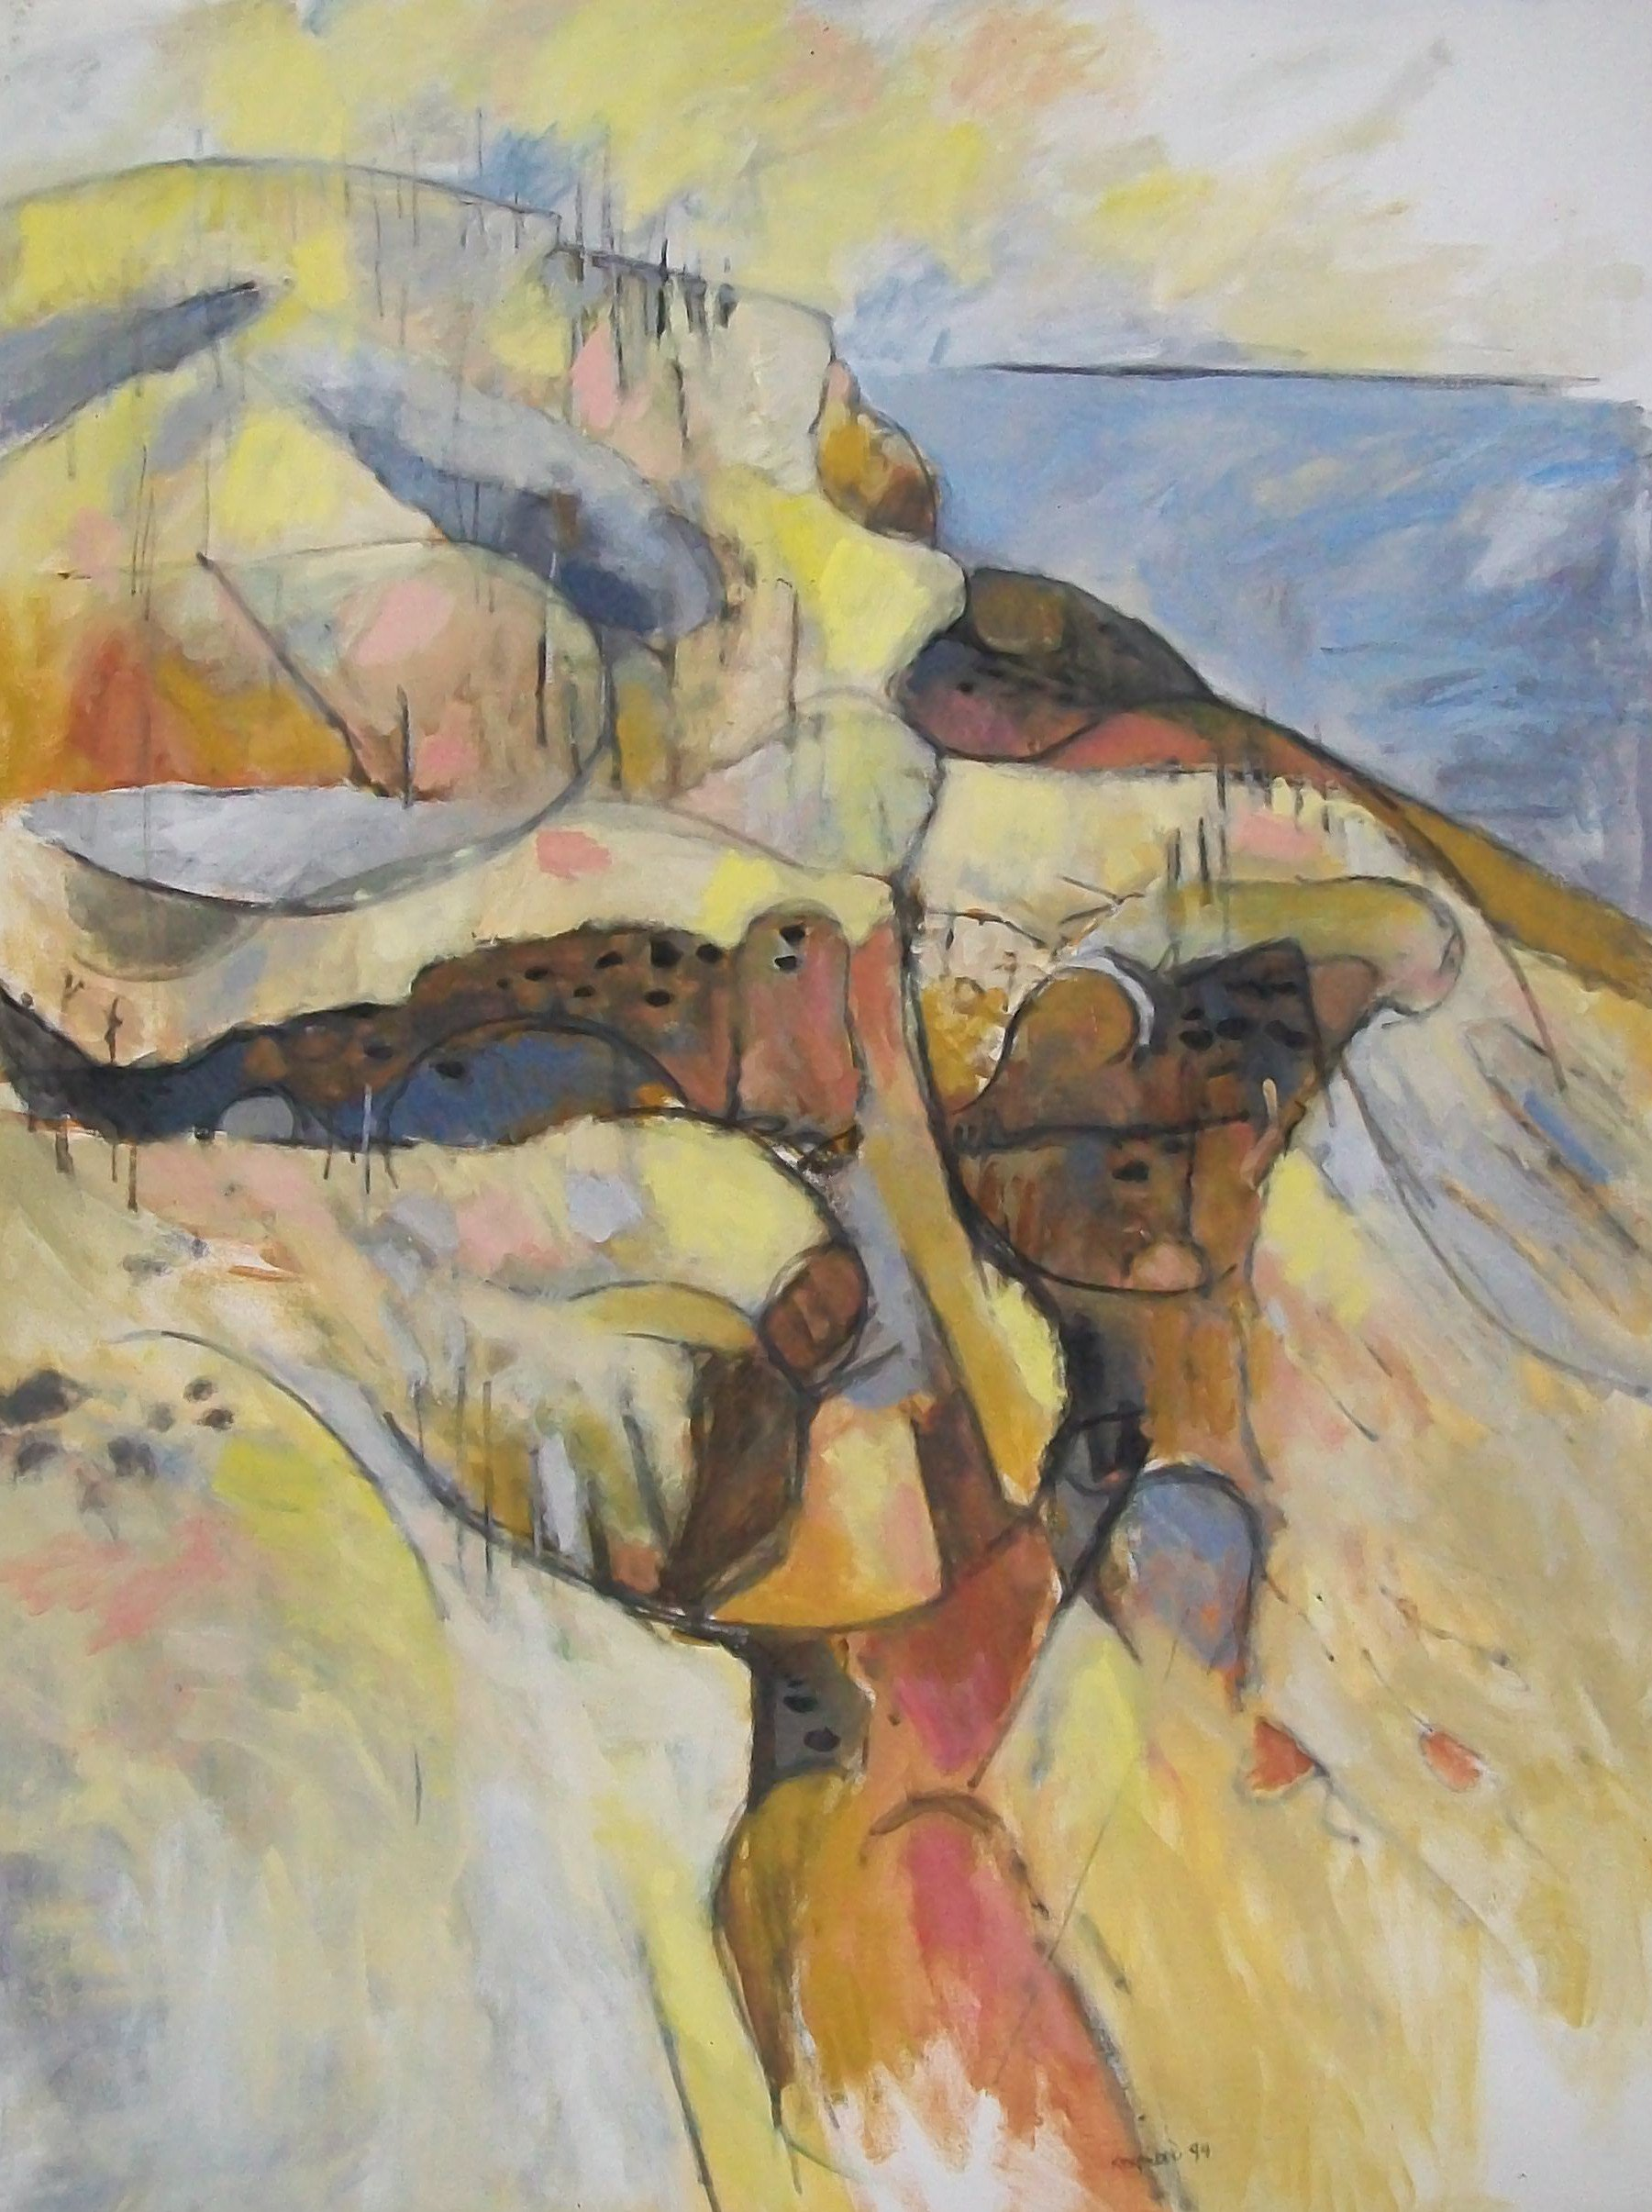 February, 1994, oil on canvas